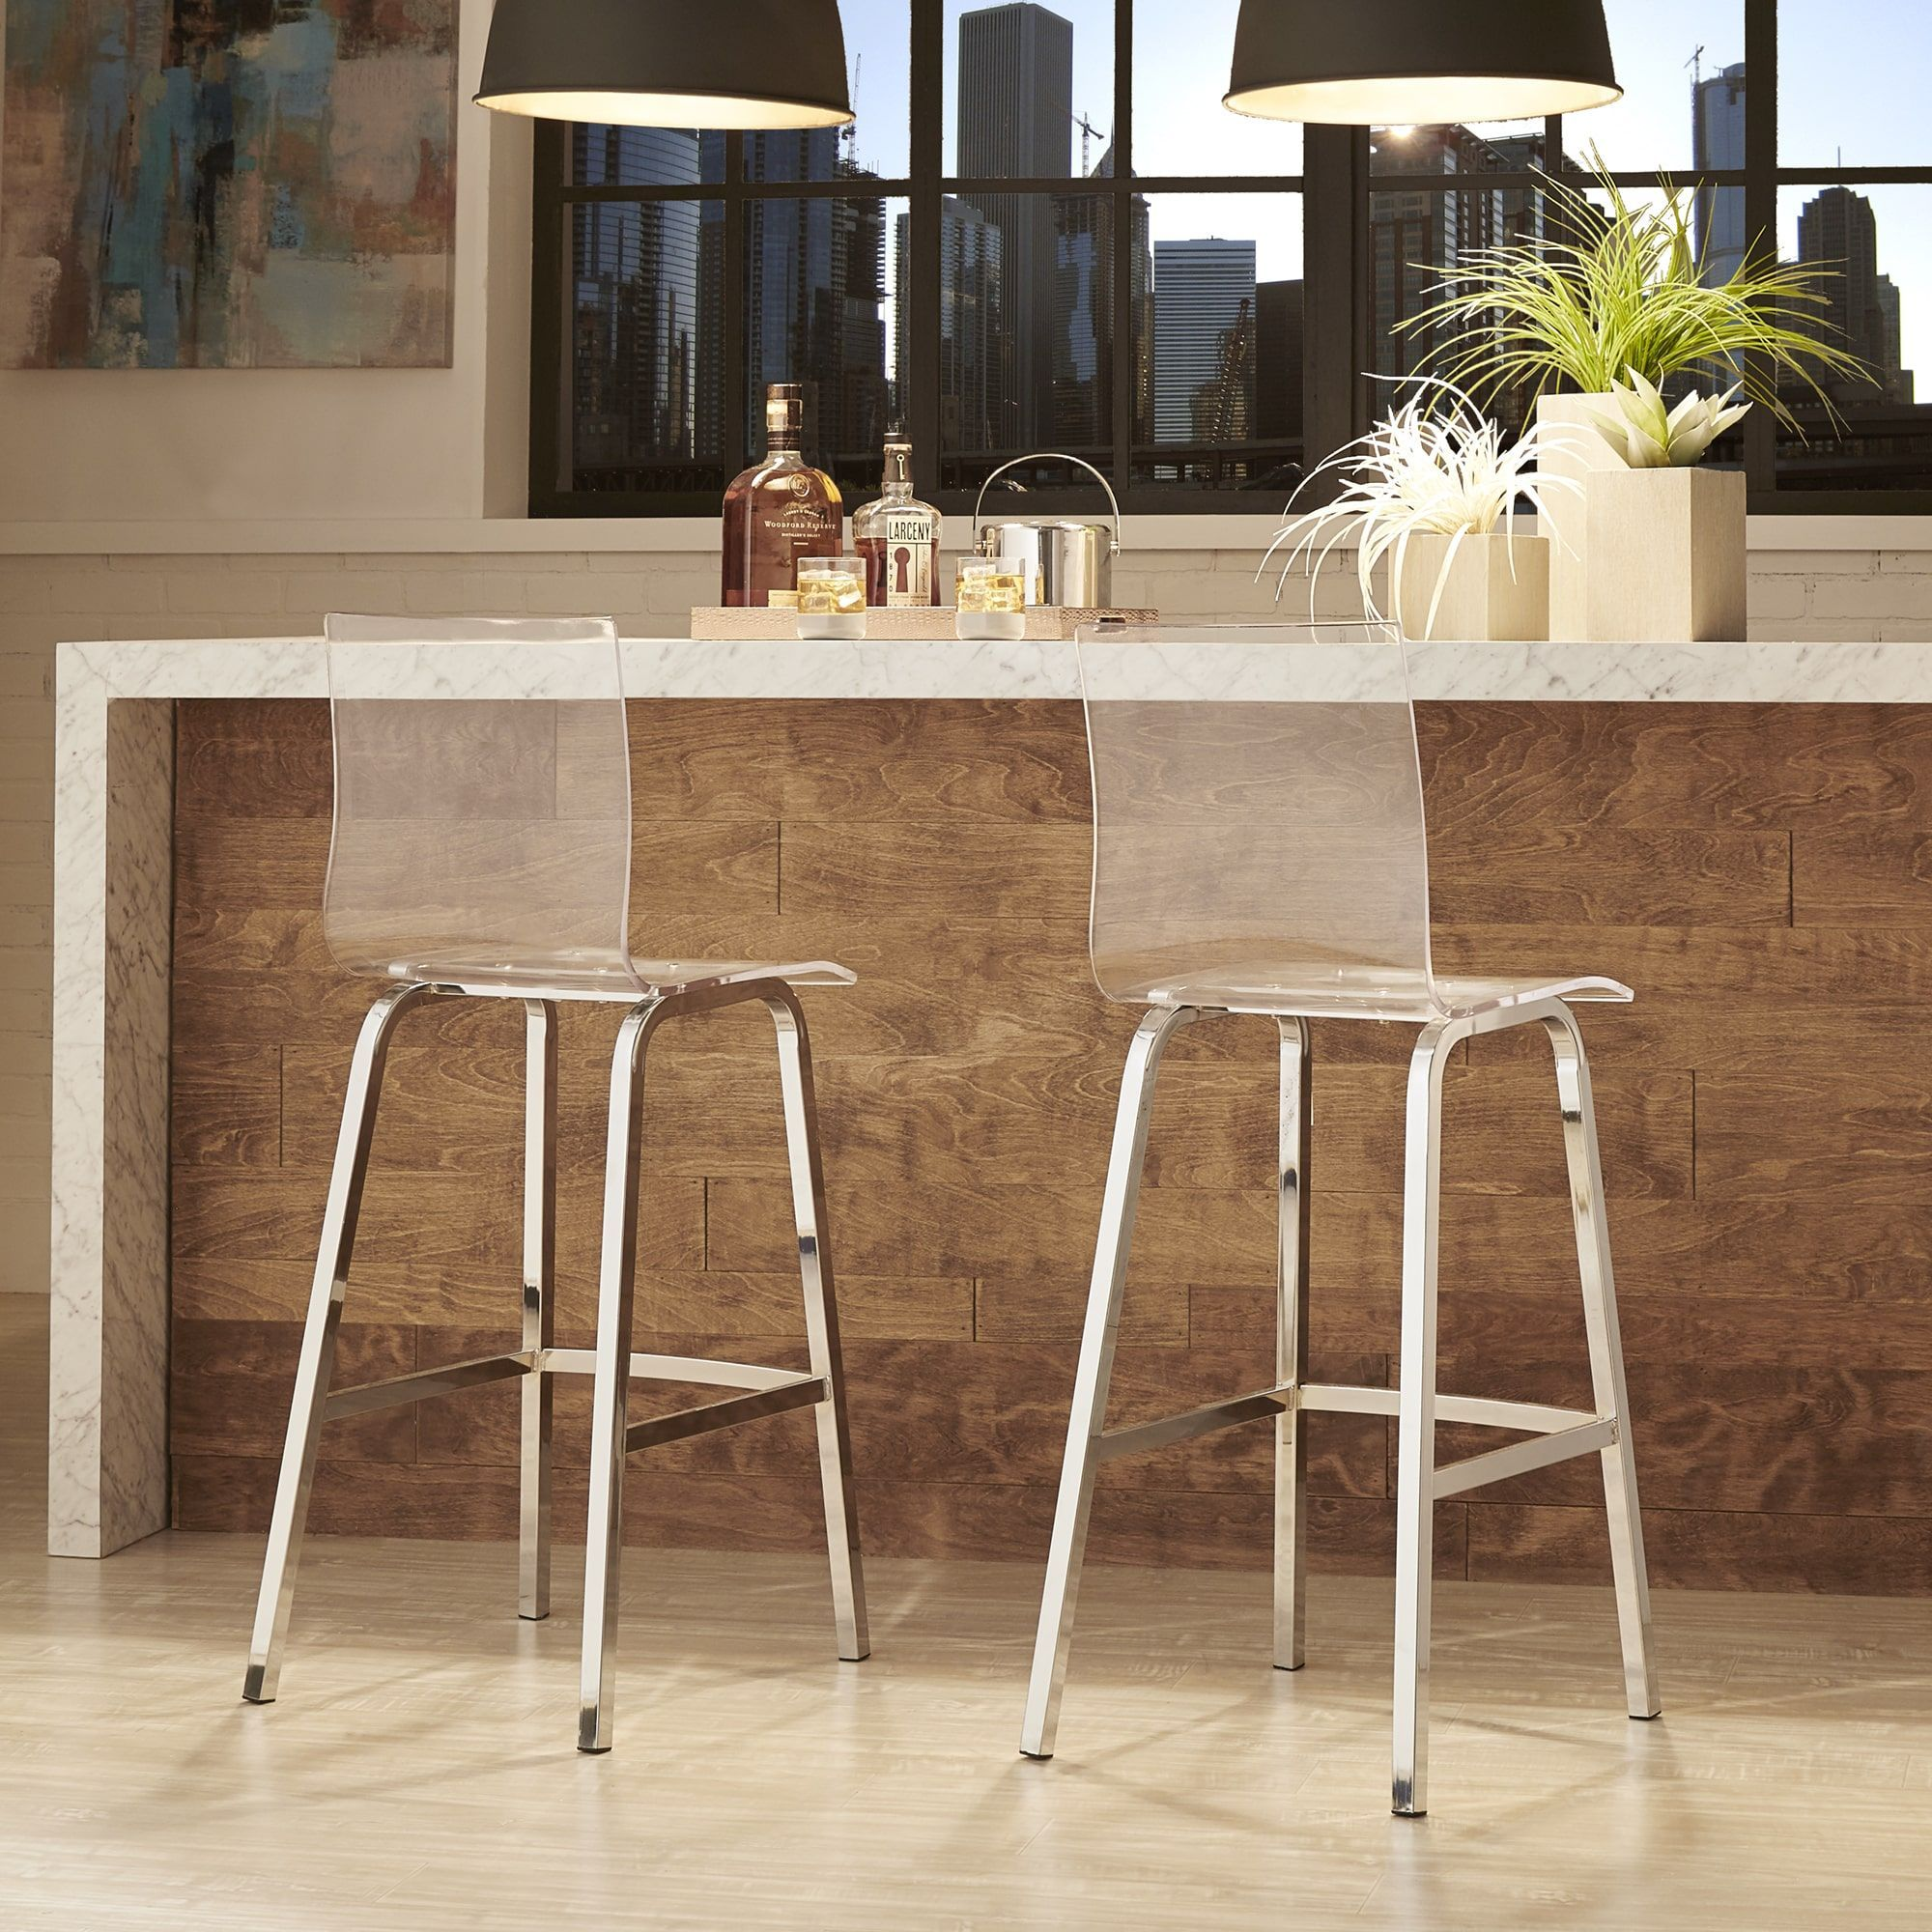 Miles Clear Acrylic Swivel High Back Bar Stools with Back (Set of 2) by  iNSPIRE Q Bold by iNSPIRE Q